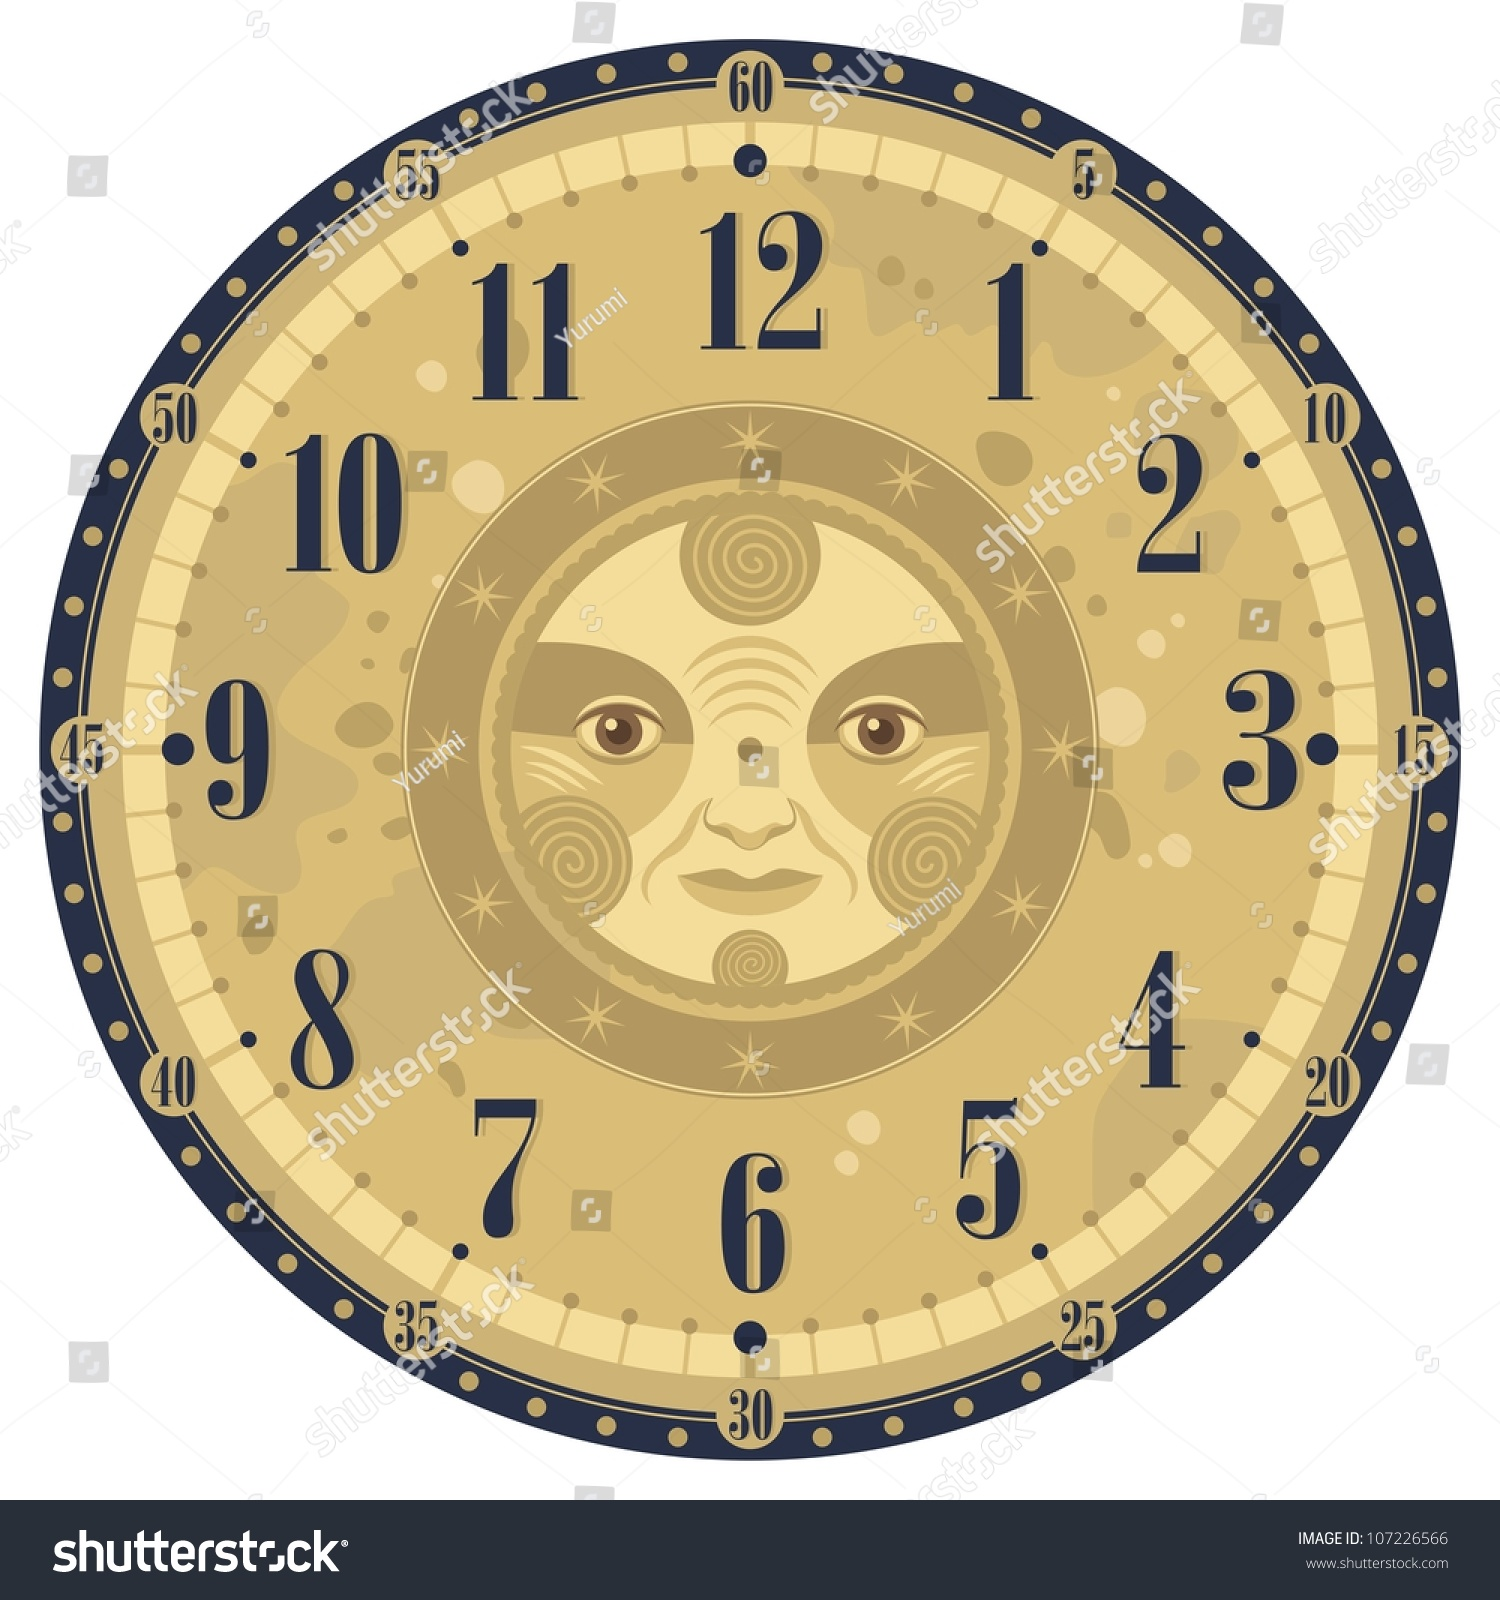 Vintage Clock Face Template With Decorative Sun Stock Vector Illustration Shutterstock